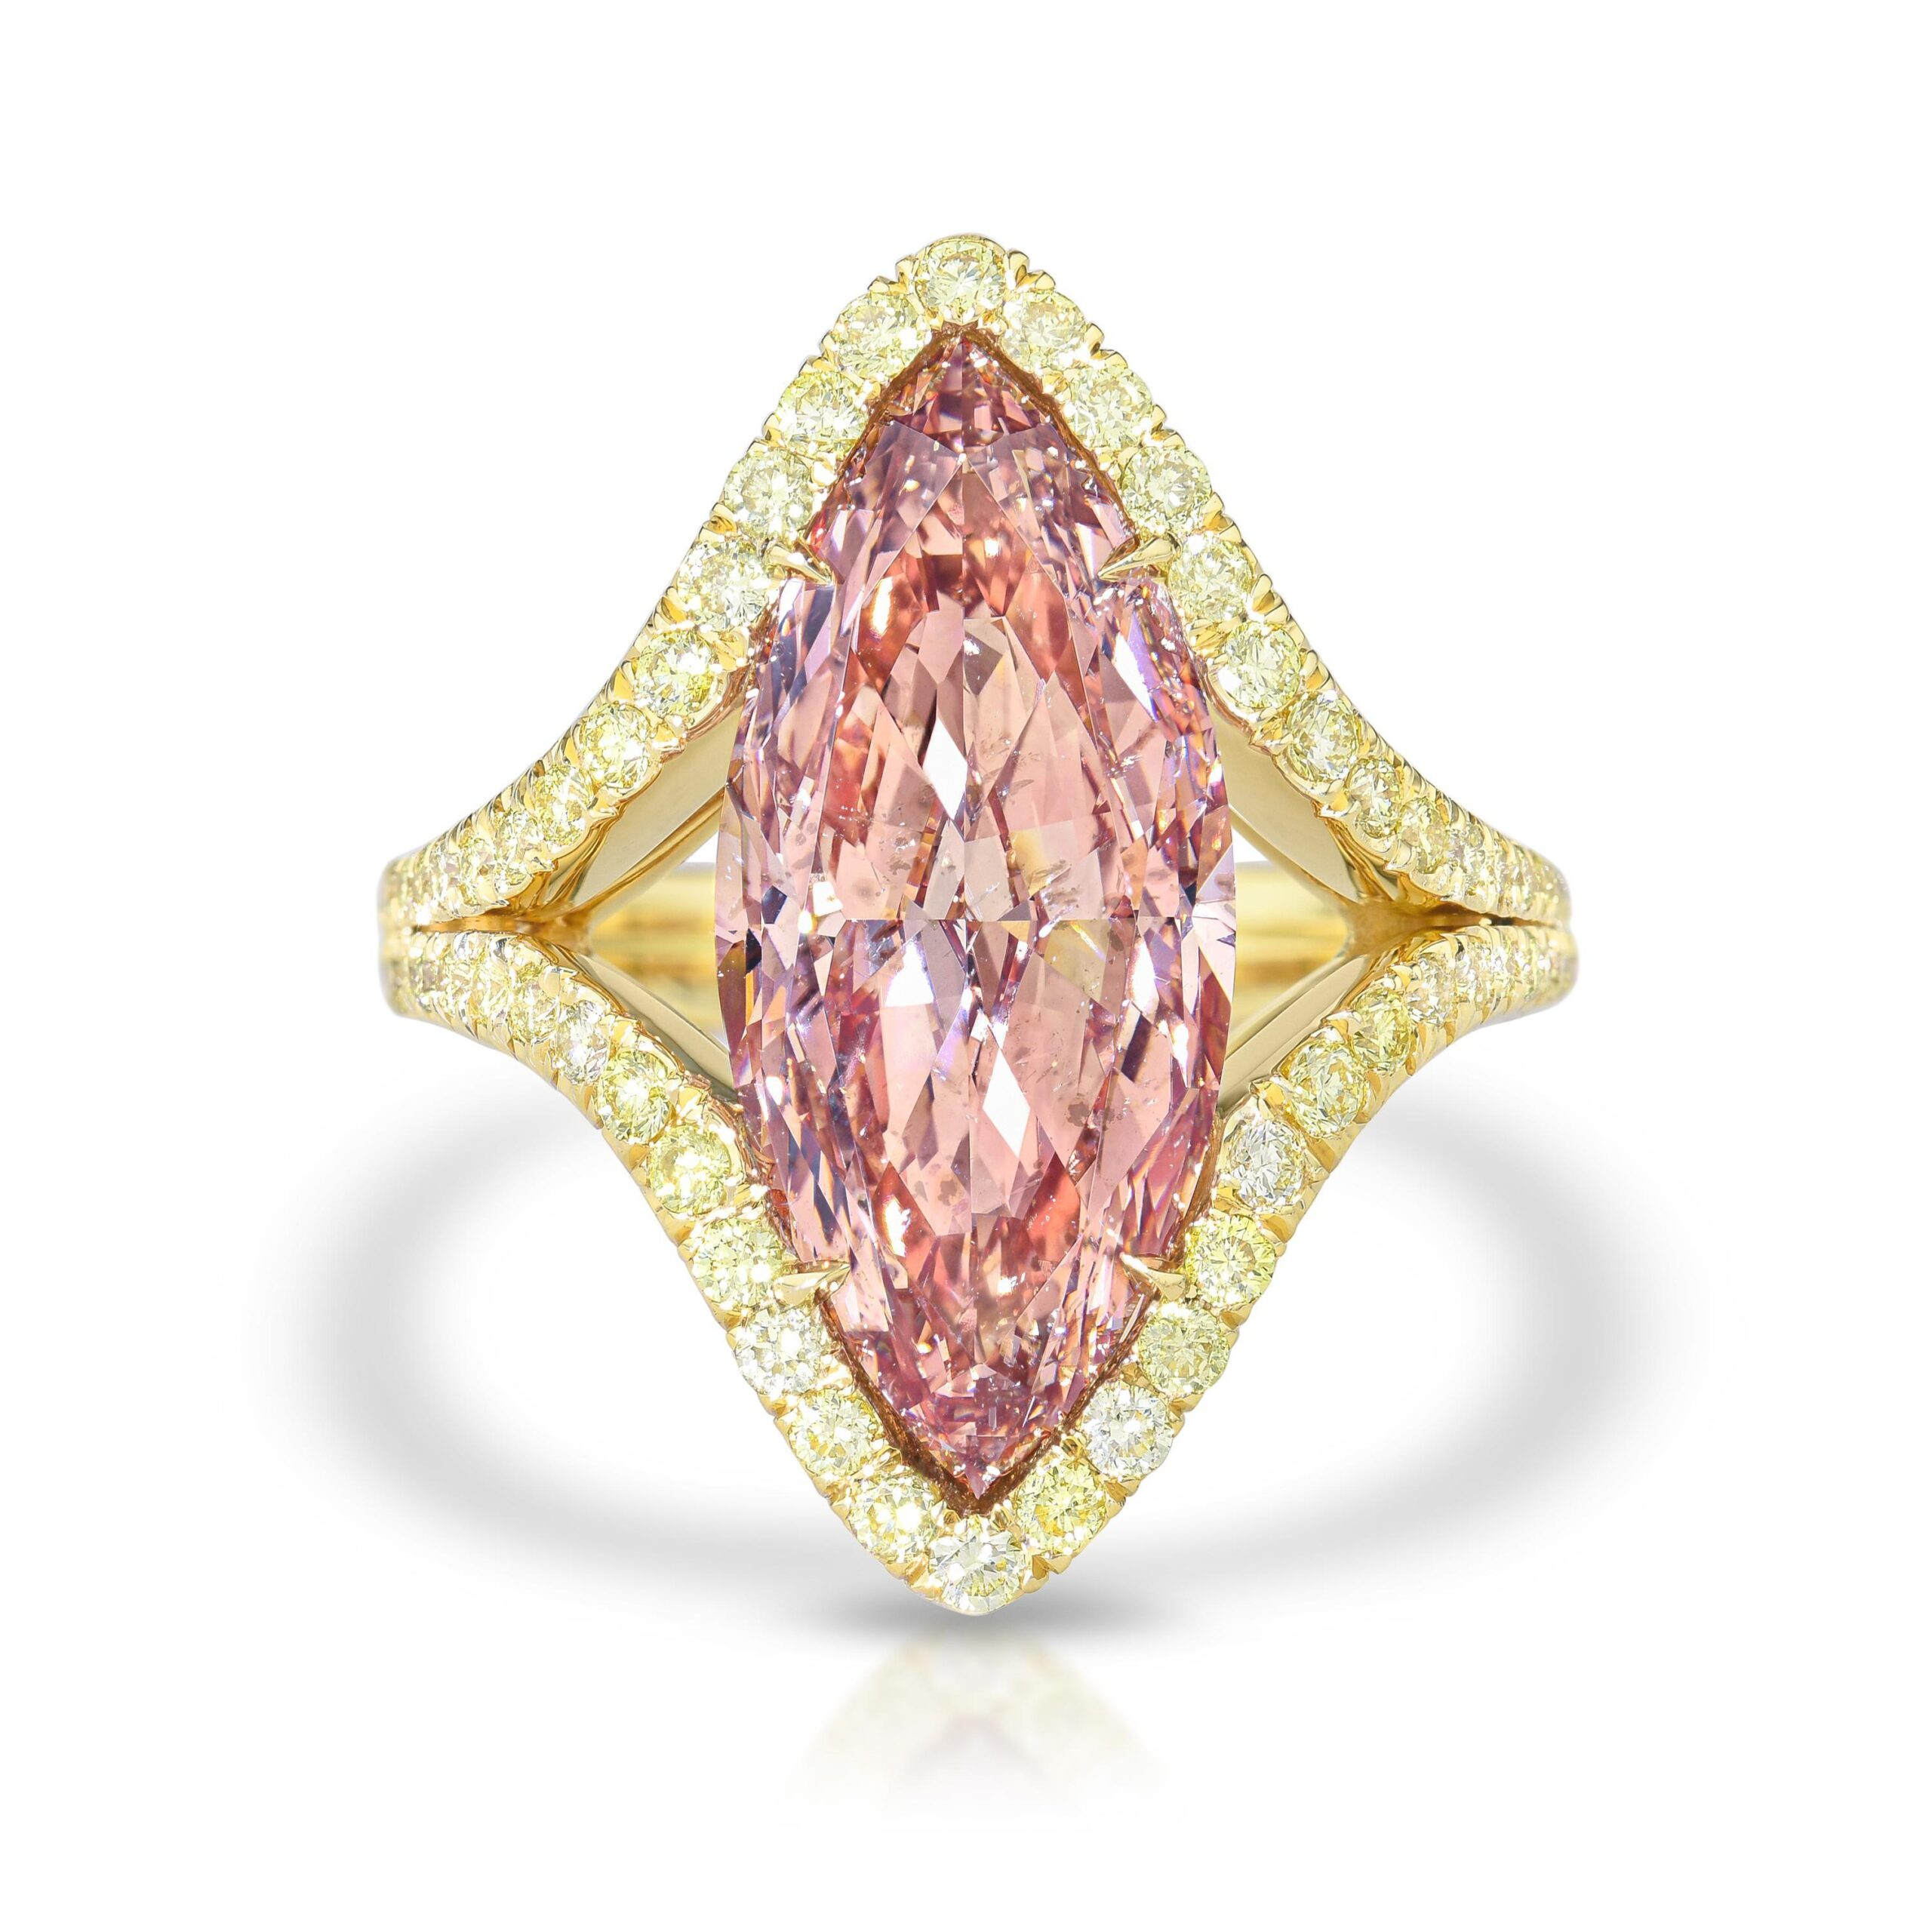 5.43-Carat Fancy Intense Orangy Pink Marquise Diamond Ring, with GIA